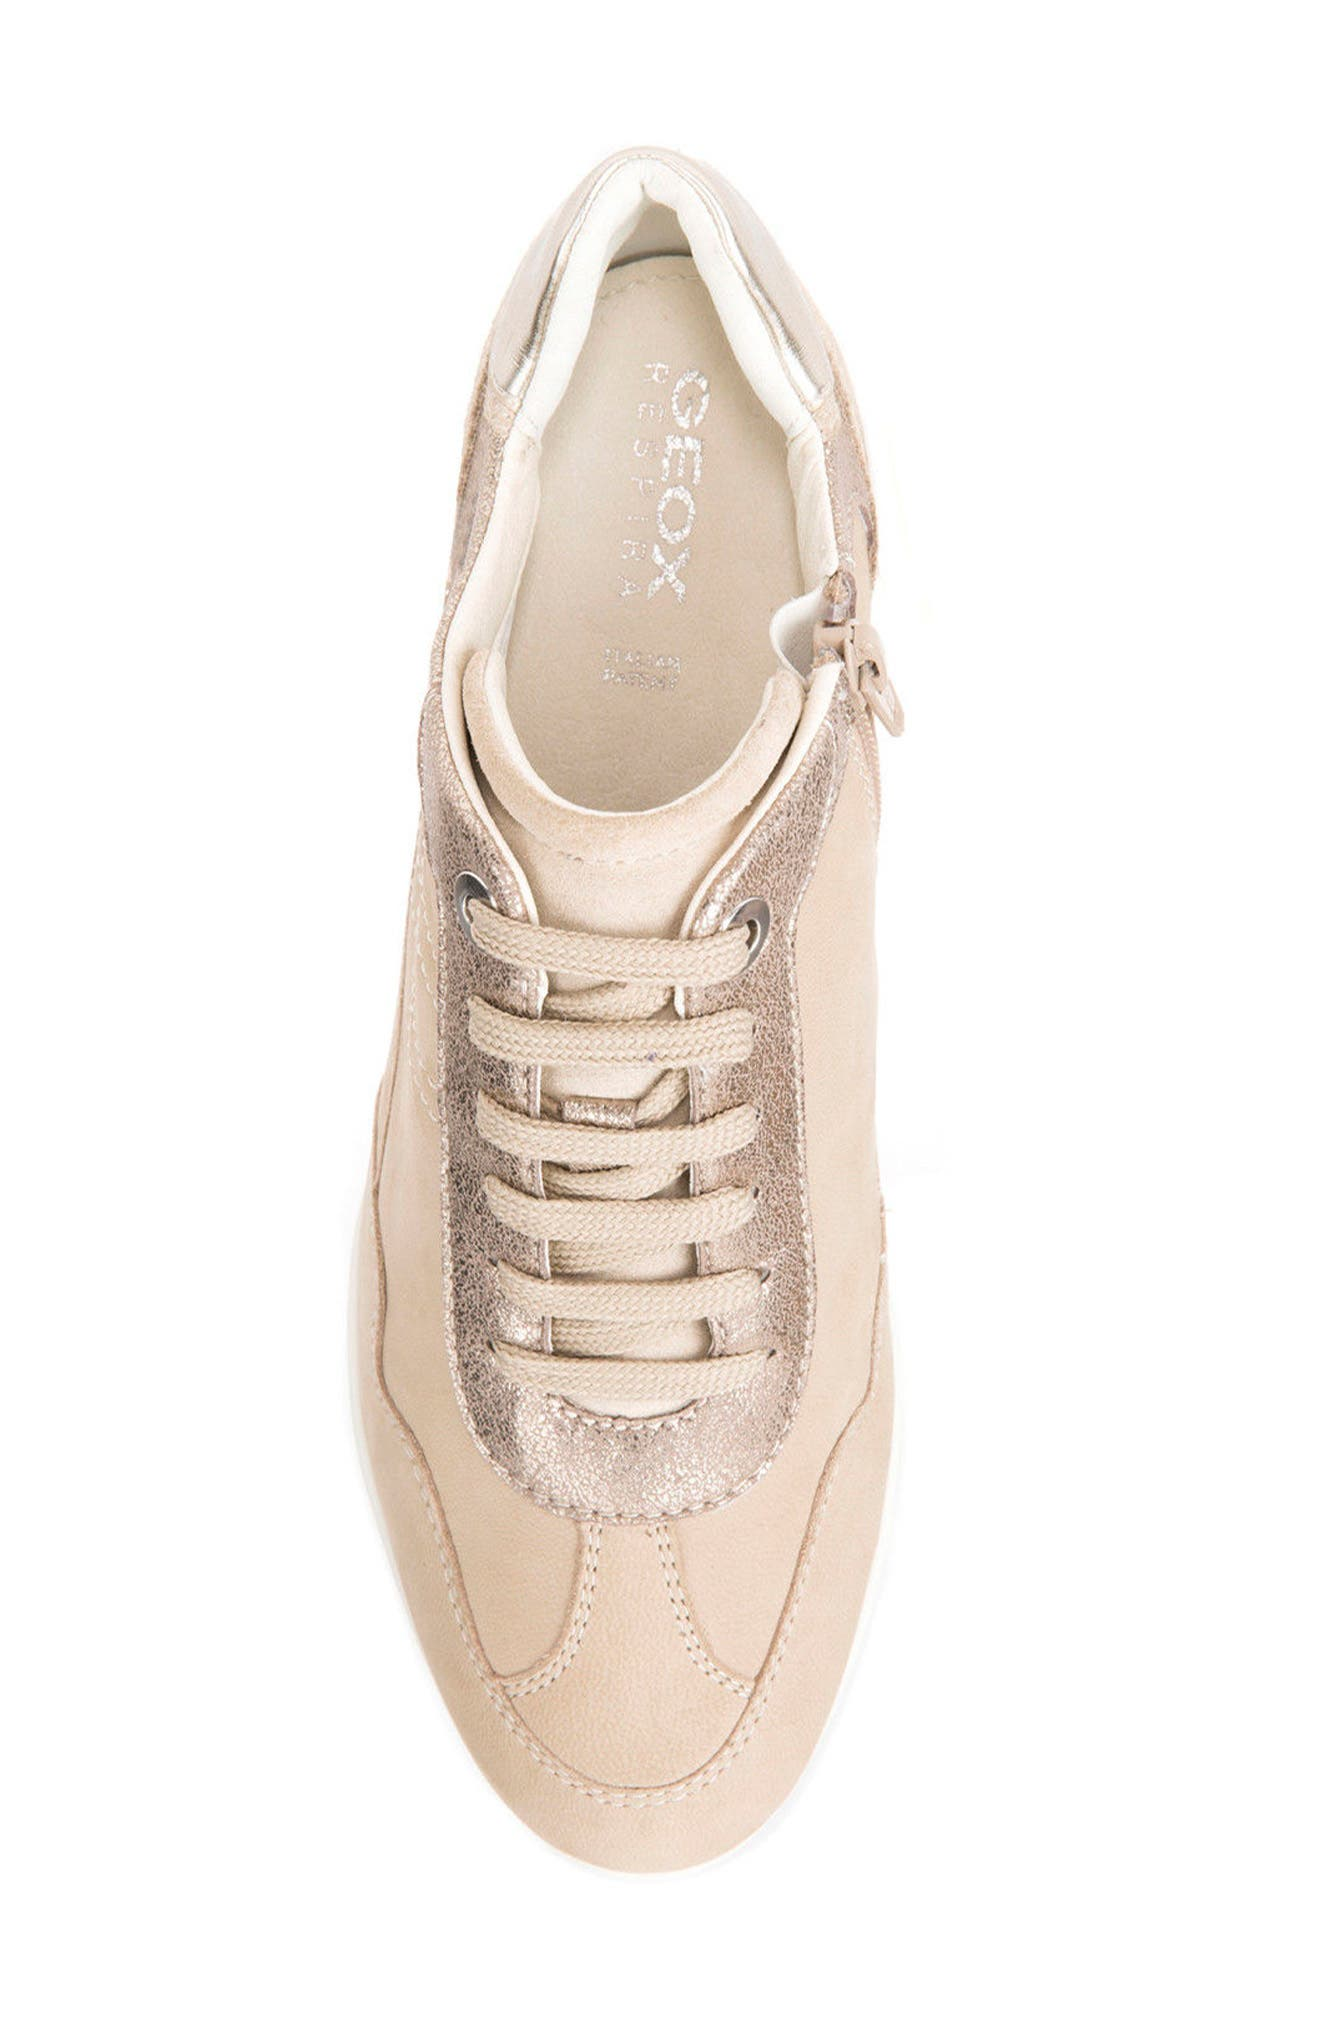 Illusion 34 Wedge Sneaker,                             Alternate thumbnail 5, color,                             SAND LEATHER